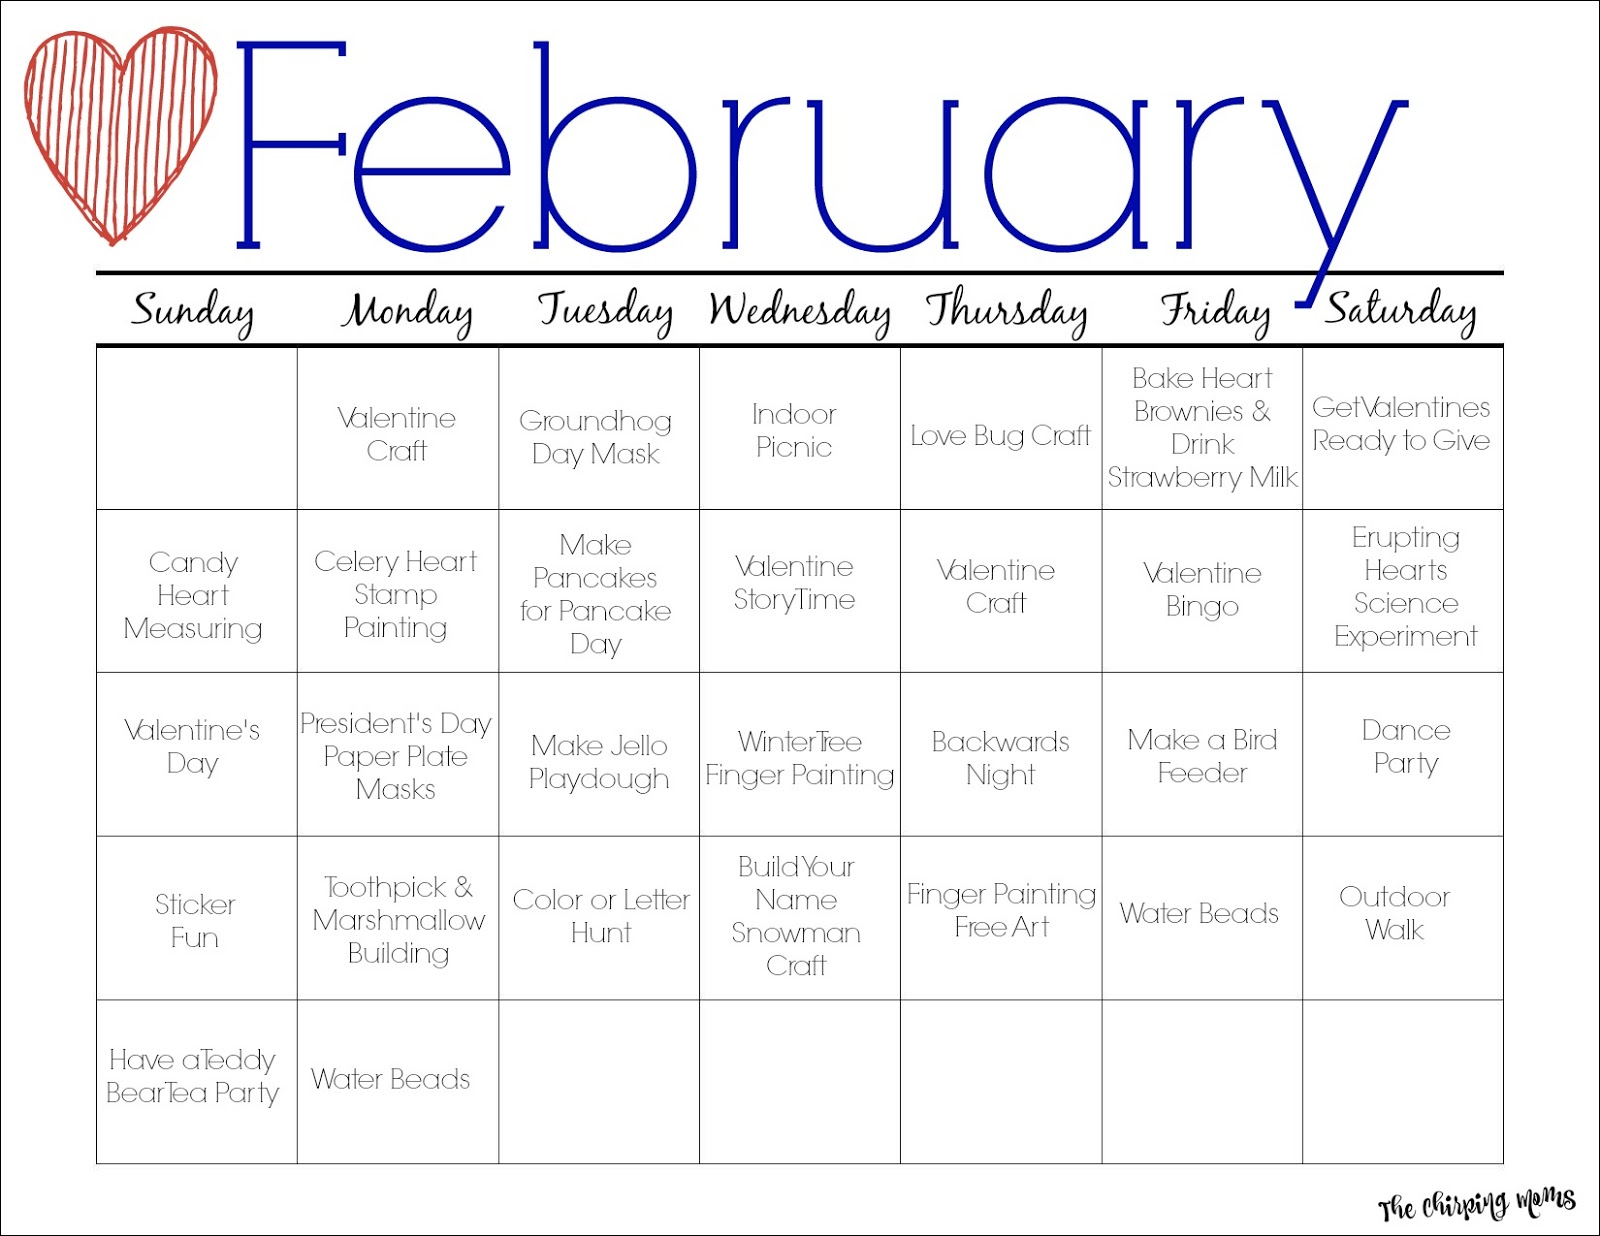 photo relating to Calendar February Printable called February Printable Recreation Calendar for Little ones - The Chirping